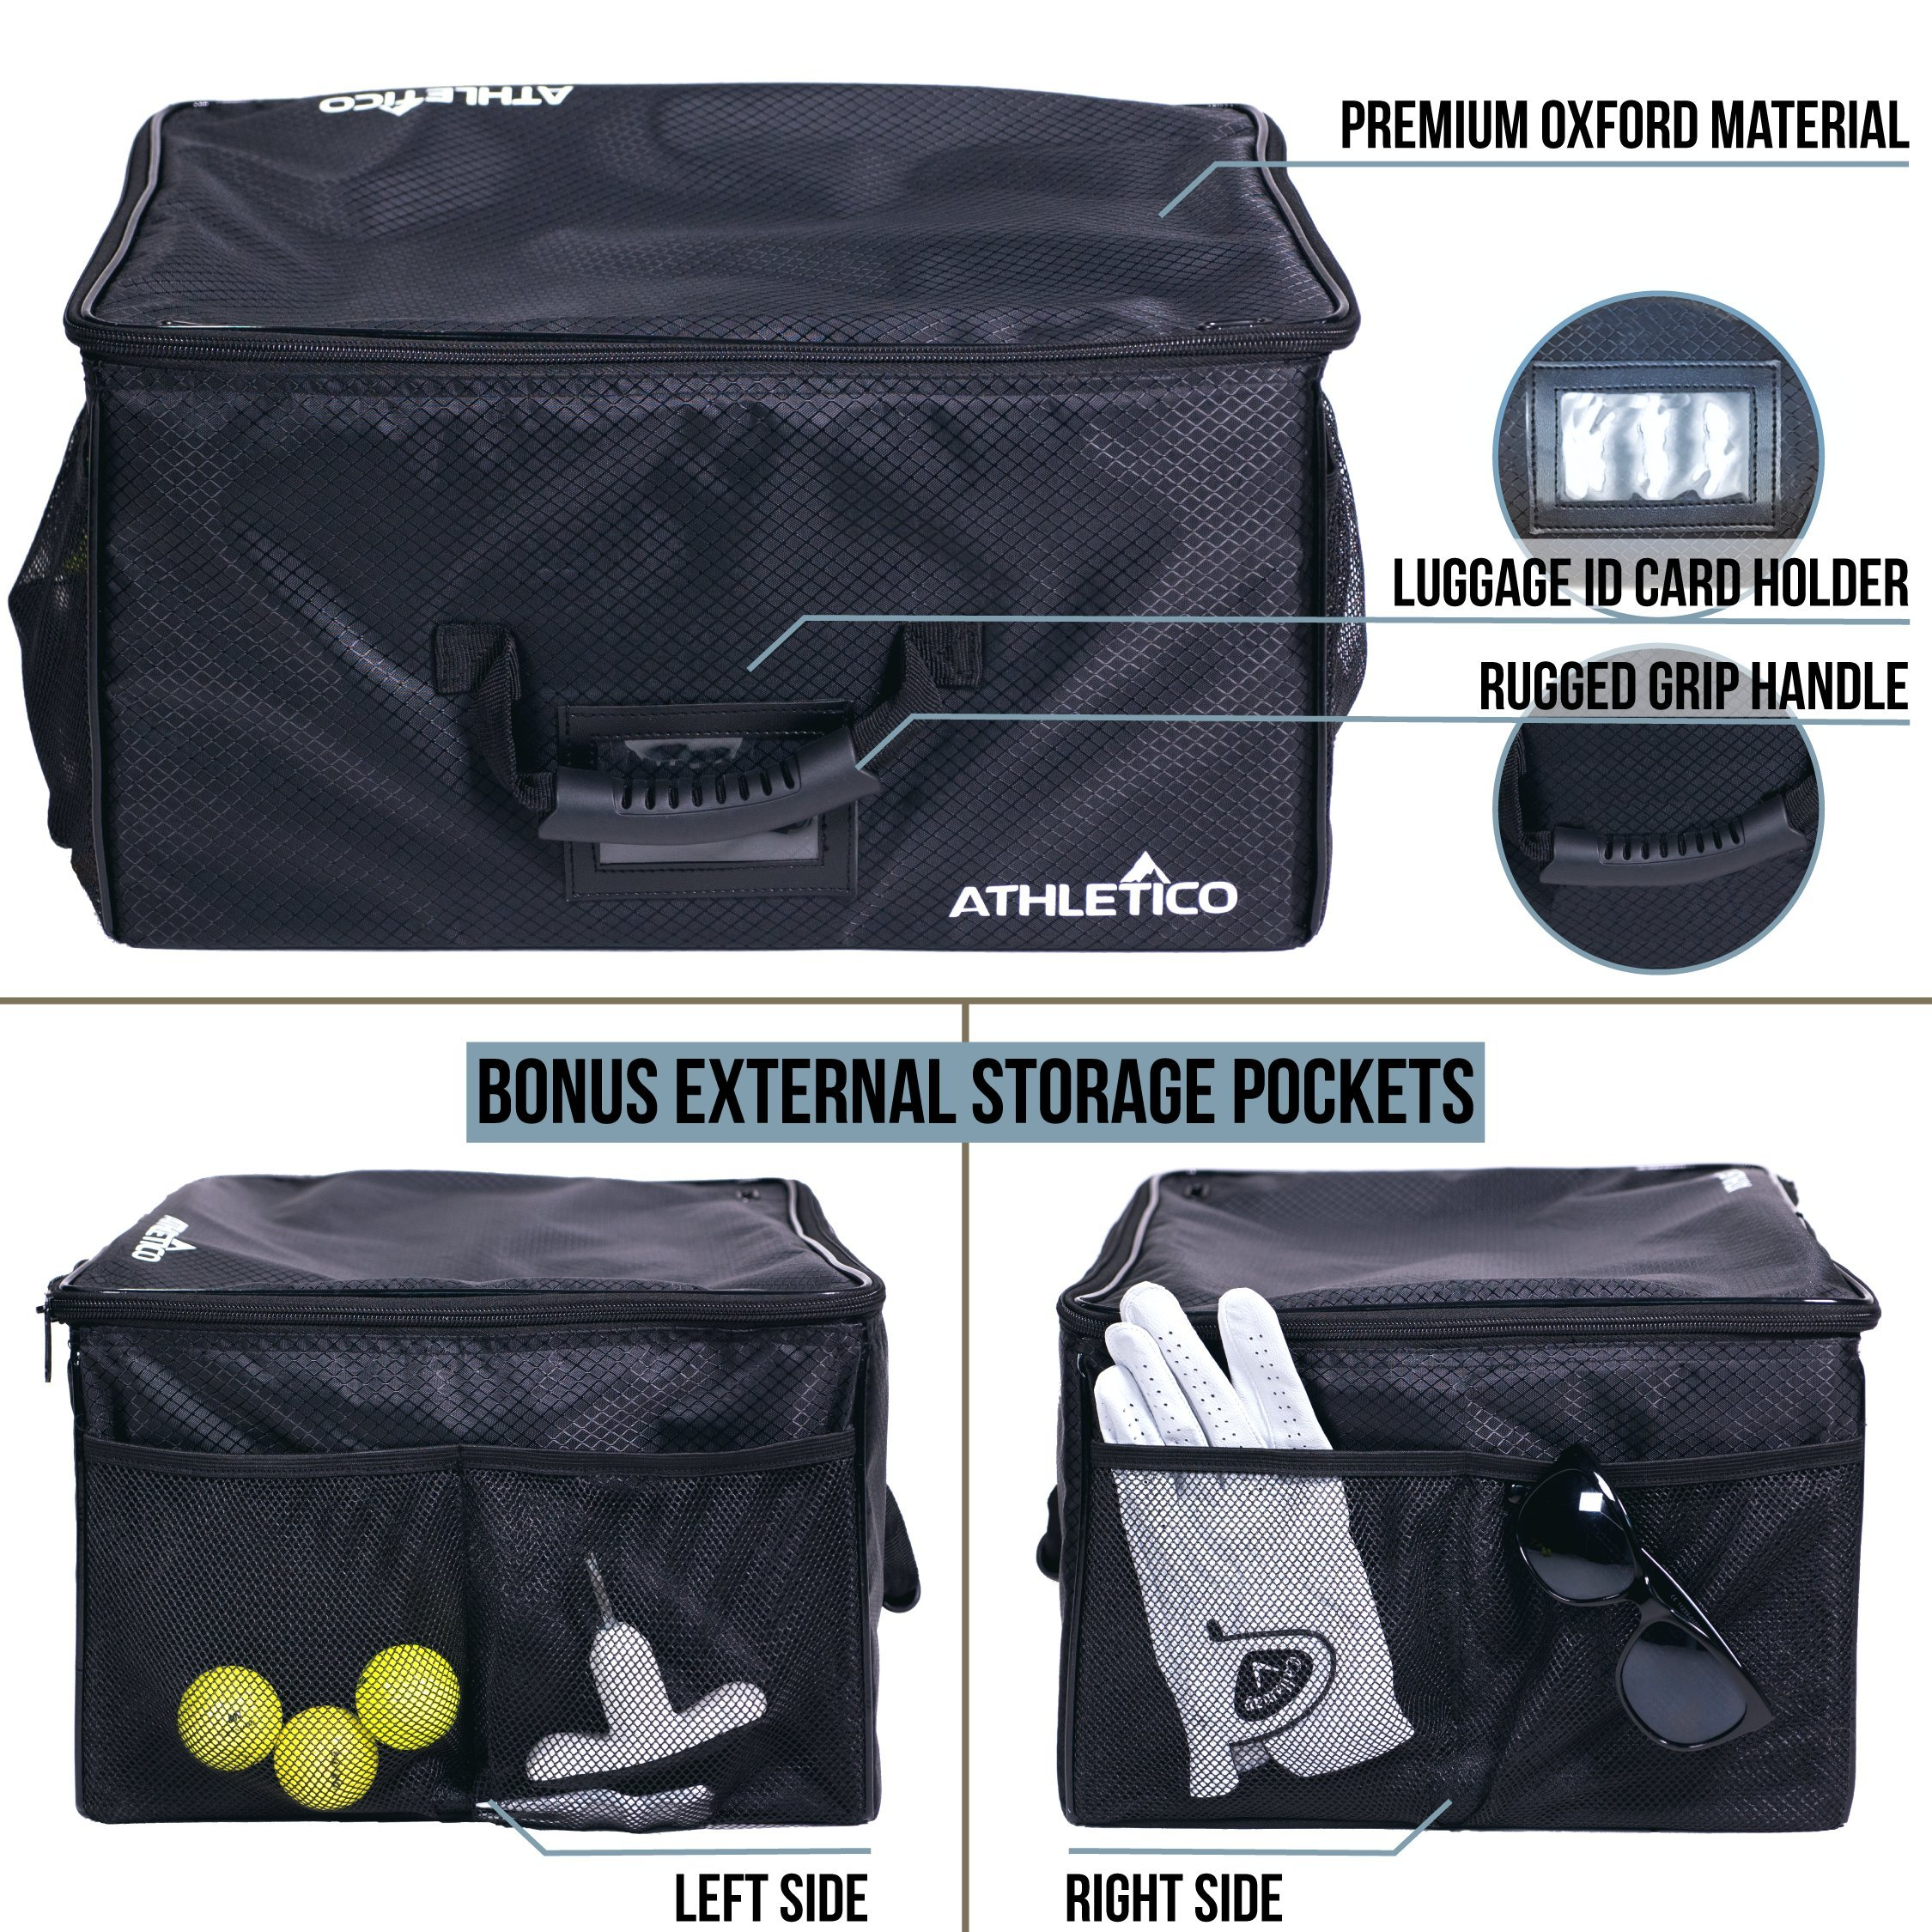 Athletico Golf Trunk Organizer Storage - Car Golf Locker To Store Golf Accessories | Collapsible When Not In Use by Athletico (Image #3)